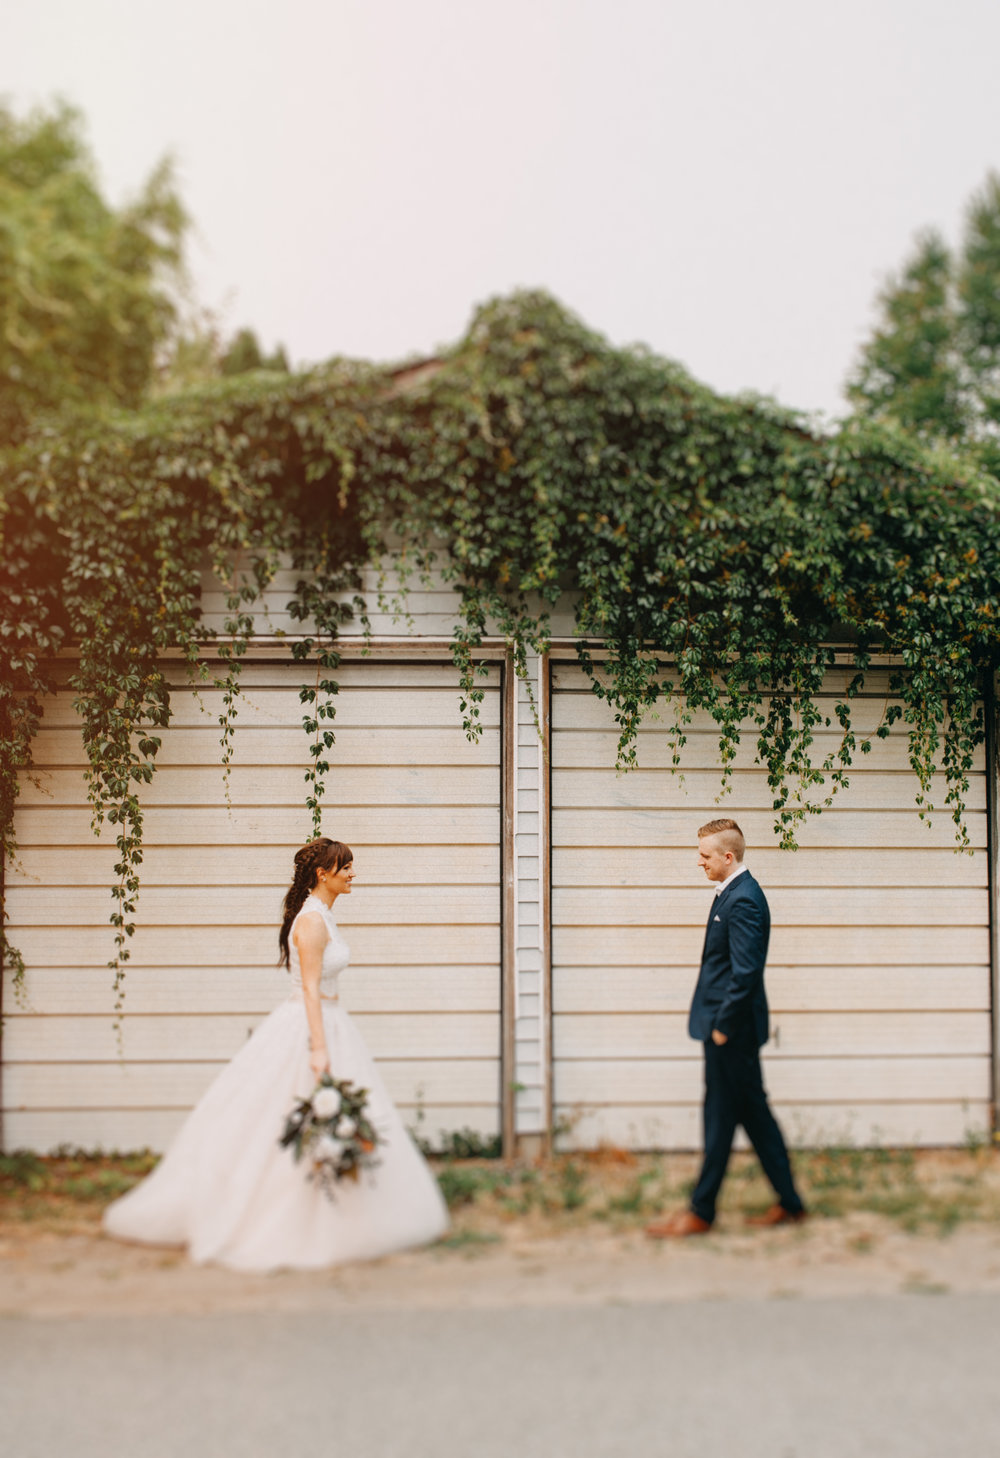 Vancouver Wedding Photographer - Bride And Groom First Look Outdoors